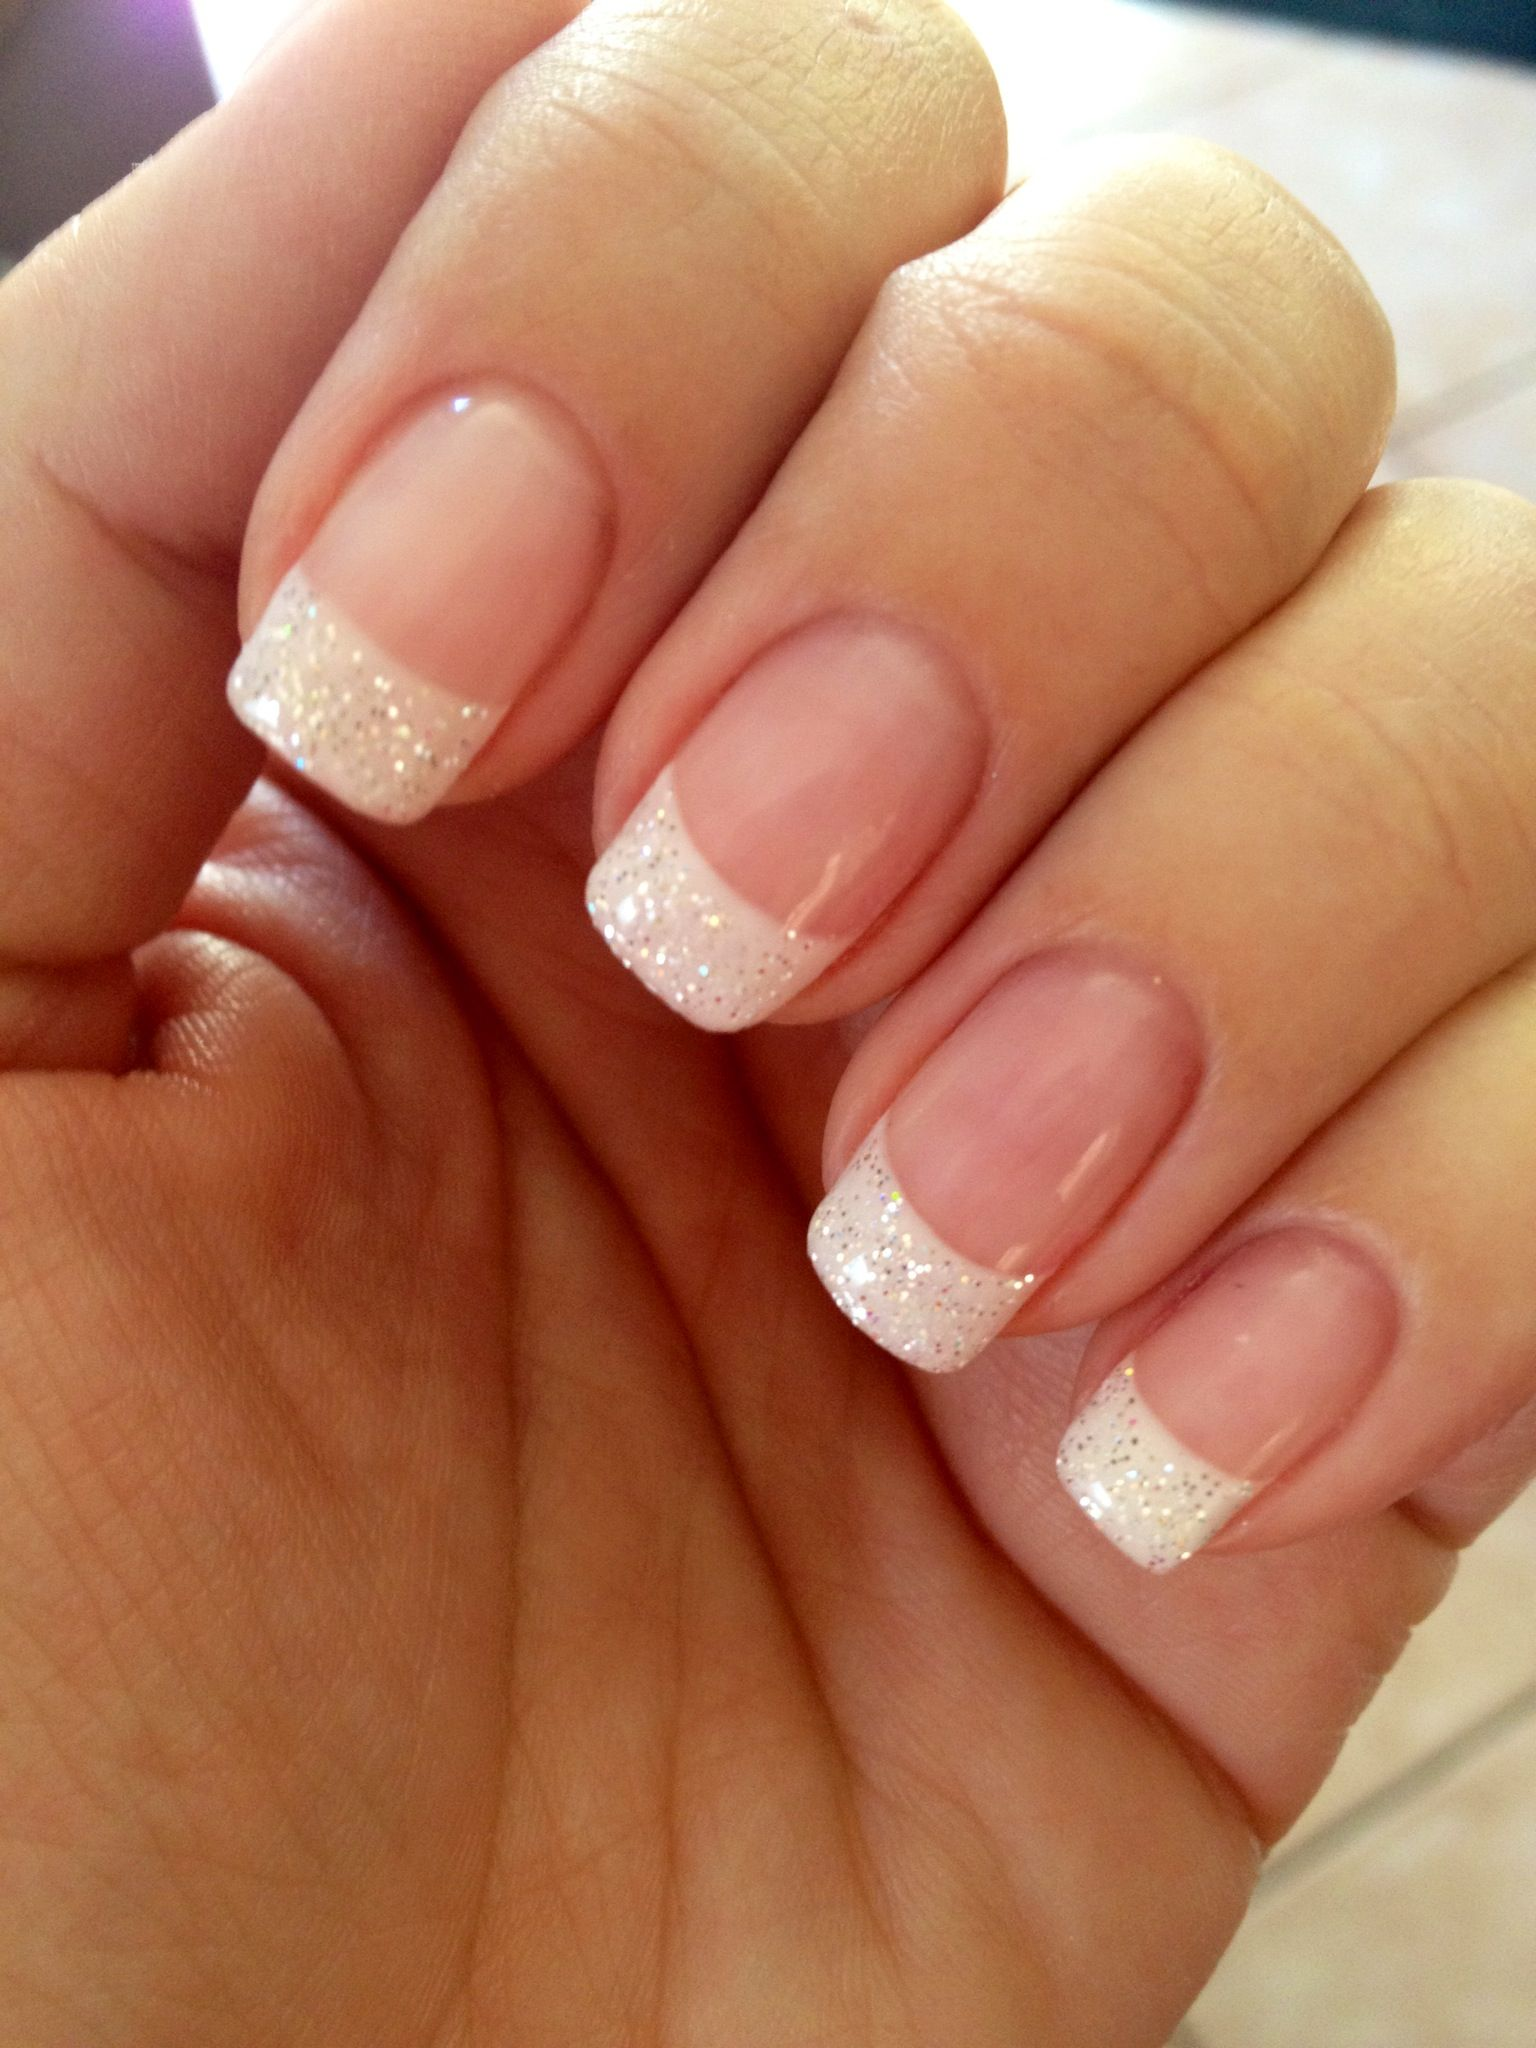 26 Awesome French Manicure Designs Hottest French Manicure Ideas